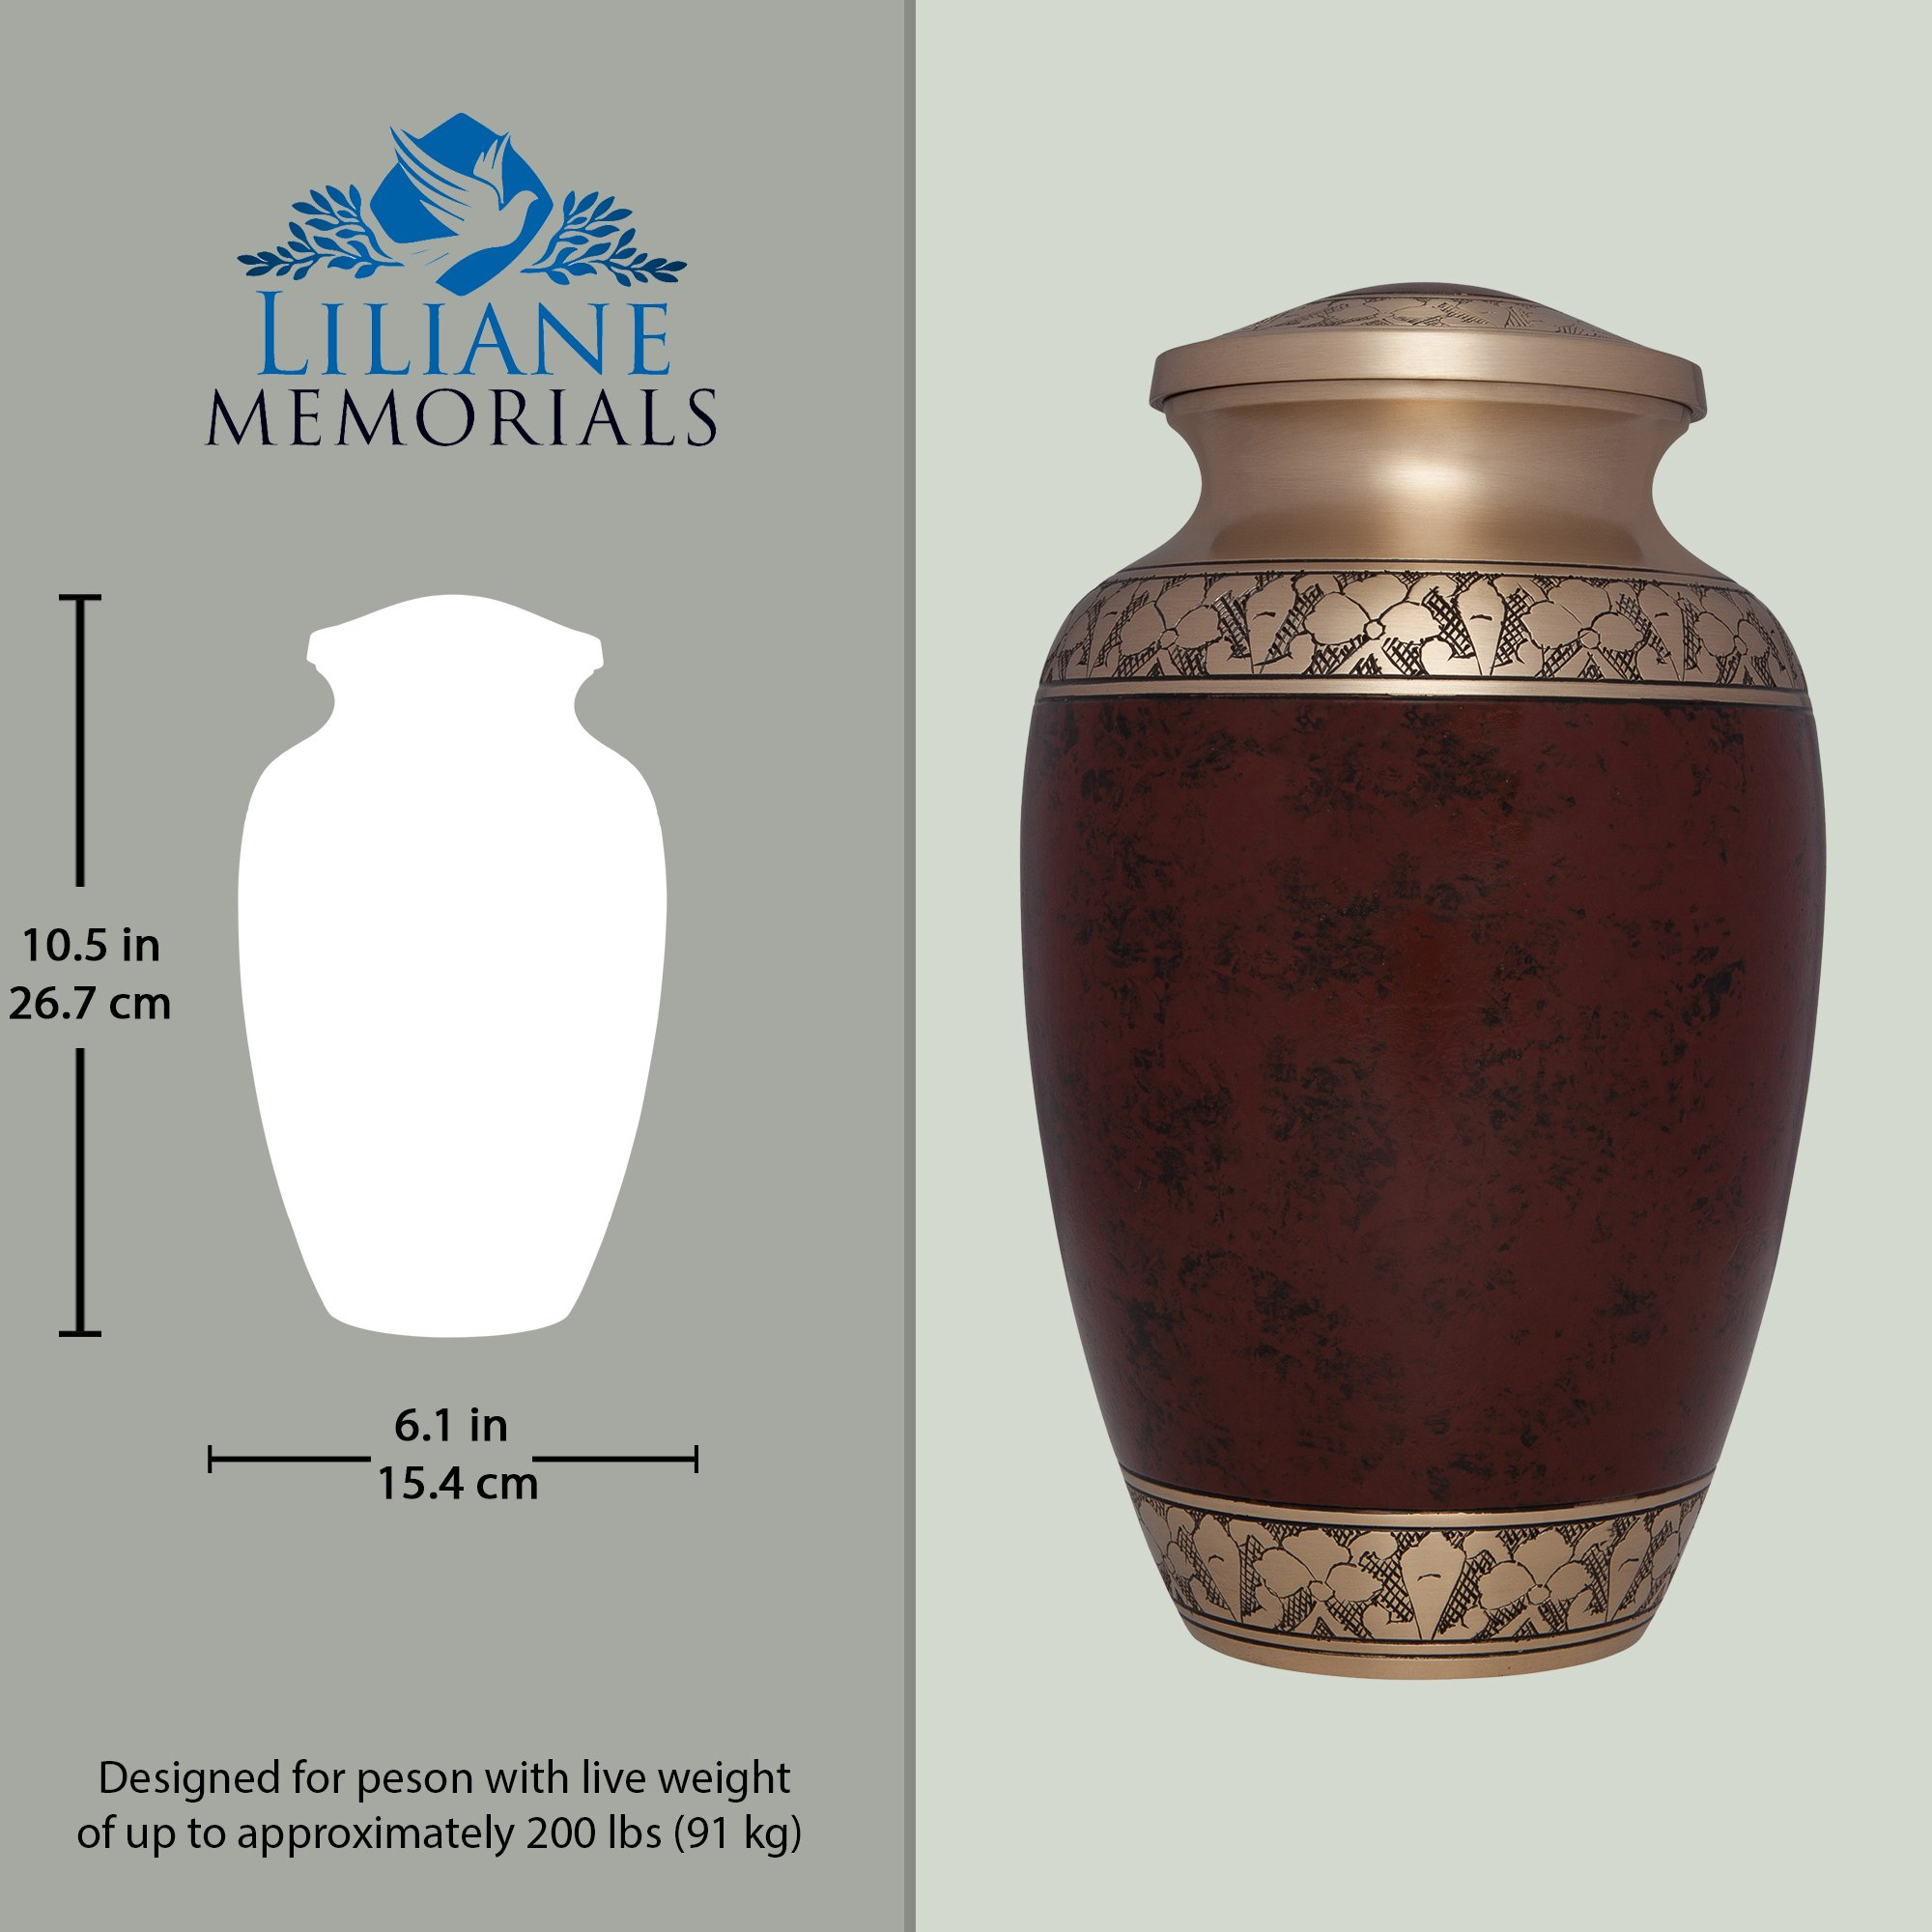 Brown Funeral Urn by Liliane Memorials - Cremation Urn for Human Ashes - Hand Made in Brass -Suitable for Cemetery Burial or Niche - Large Size fits remains of Adults up to 200 lbs- Tranquility Brown by Liliane Memorials (Image #4)